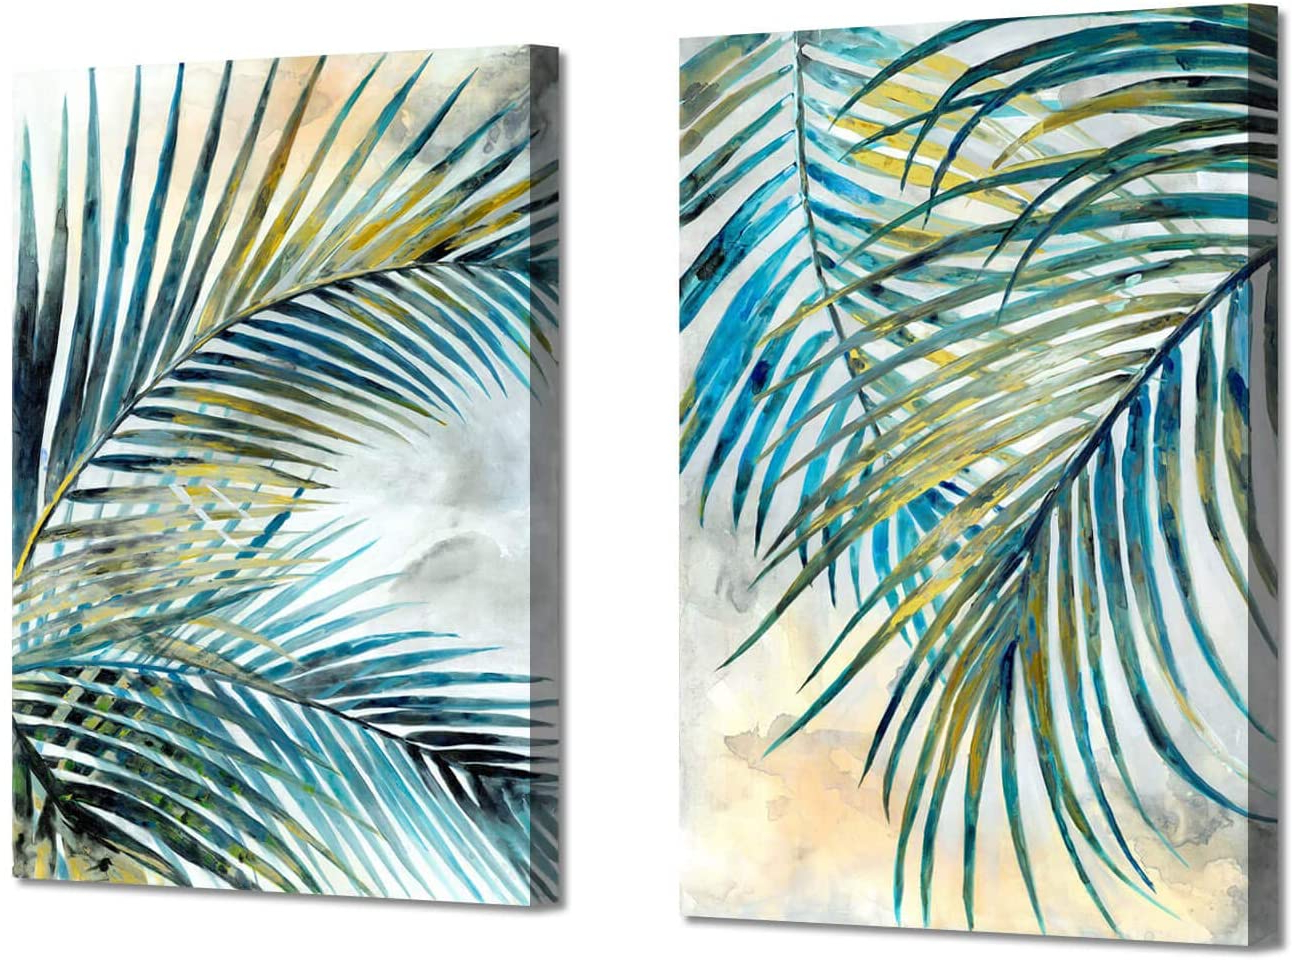 """2020 Blended Fabric Leaves Wall Hangings Inside Abstract Palm Leaves Wall Art: Tropical Ferns Leaf Graphic Art Print On Wrapped Canvas Set For Dining Rooms (12"""" W X 16"""" H X 2 Pcs,multi Sized) (View 11 of 20)"""